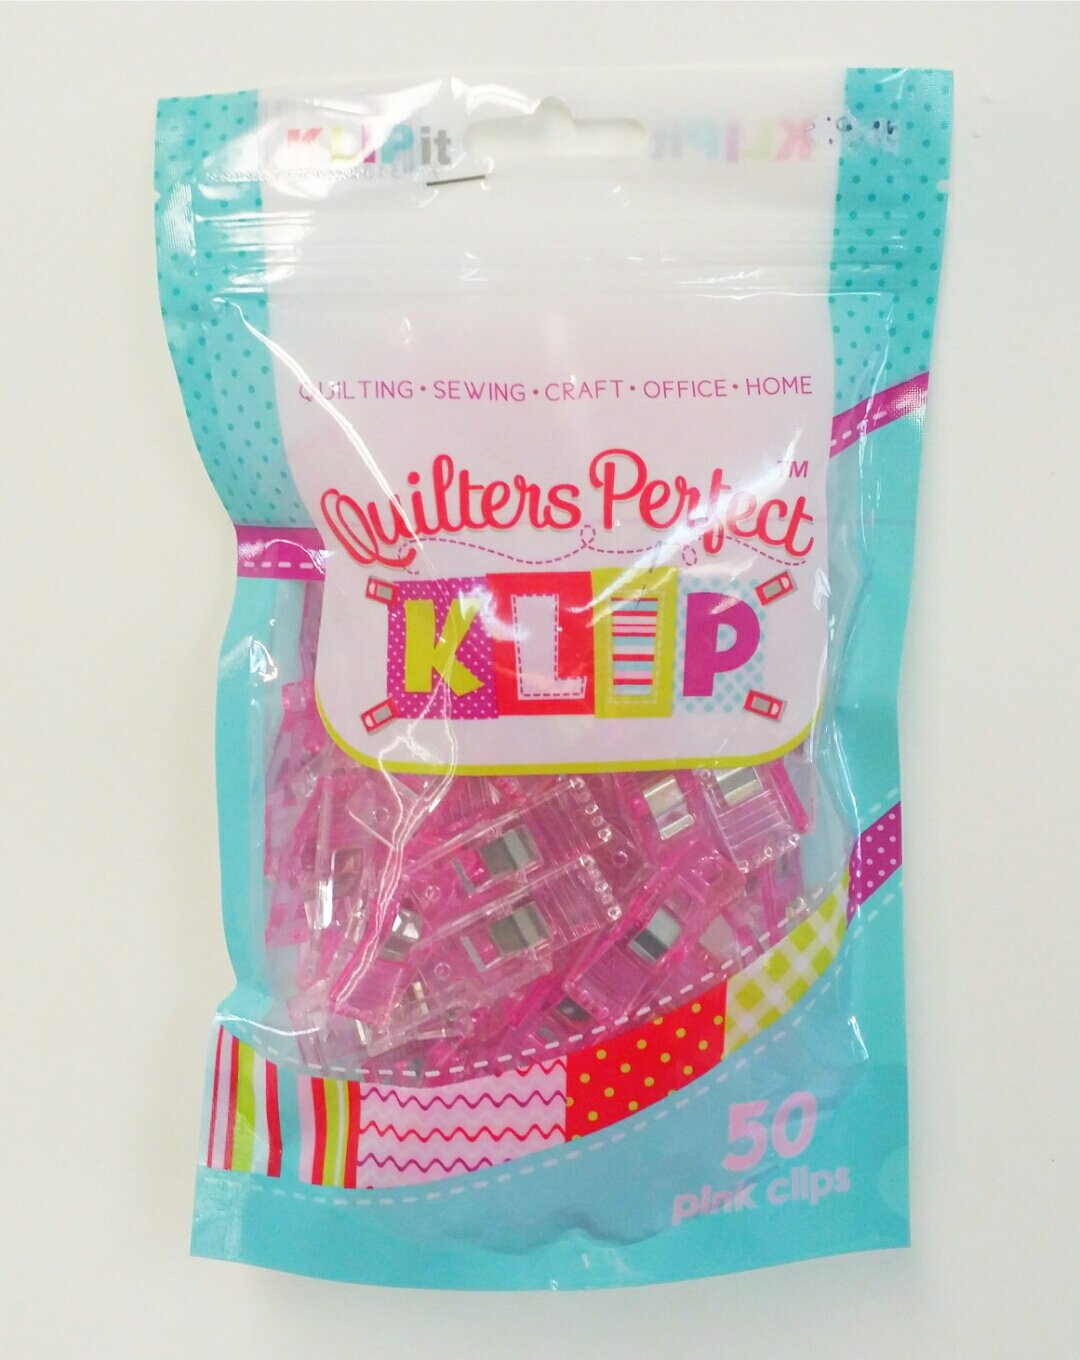 Quilters Perfect 50 Pink Klips